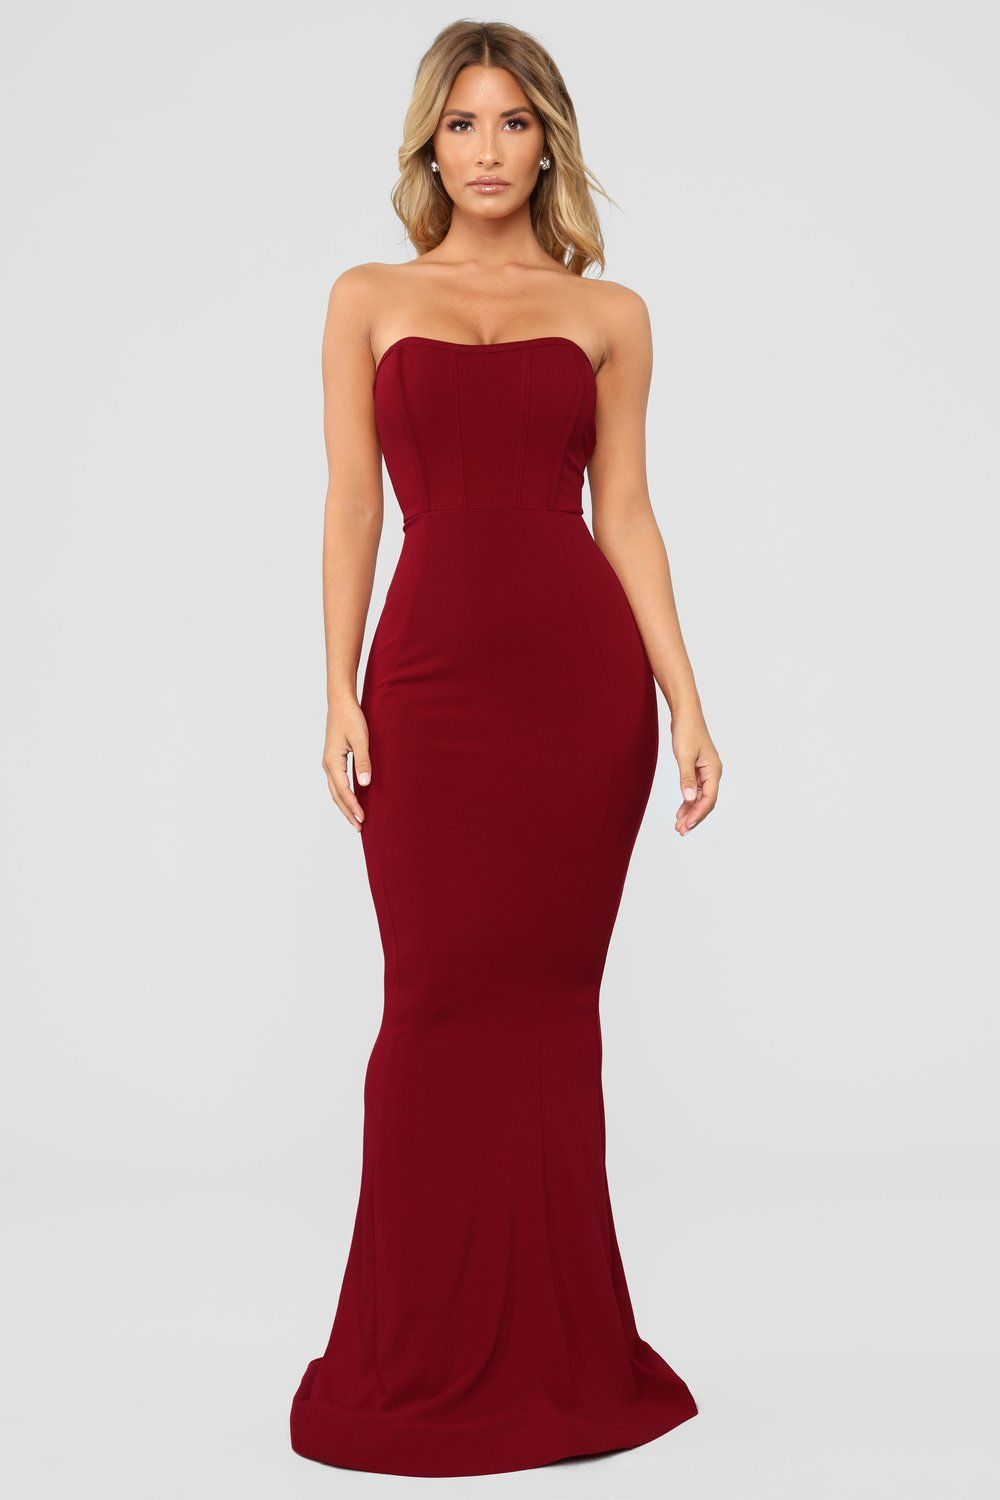 5de8d35be38 Save Me A Dance Dress - Dark Red in 2019